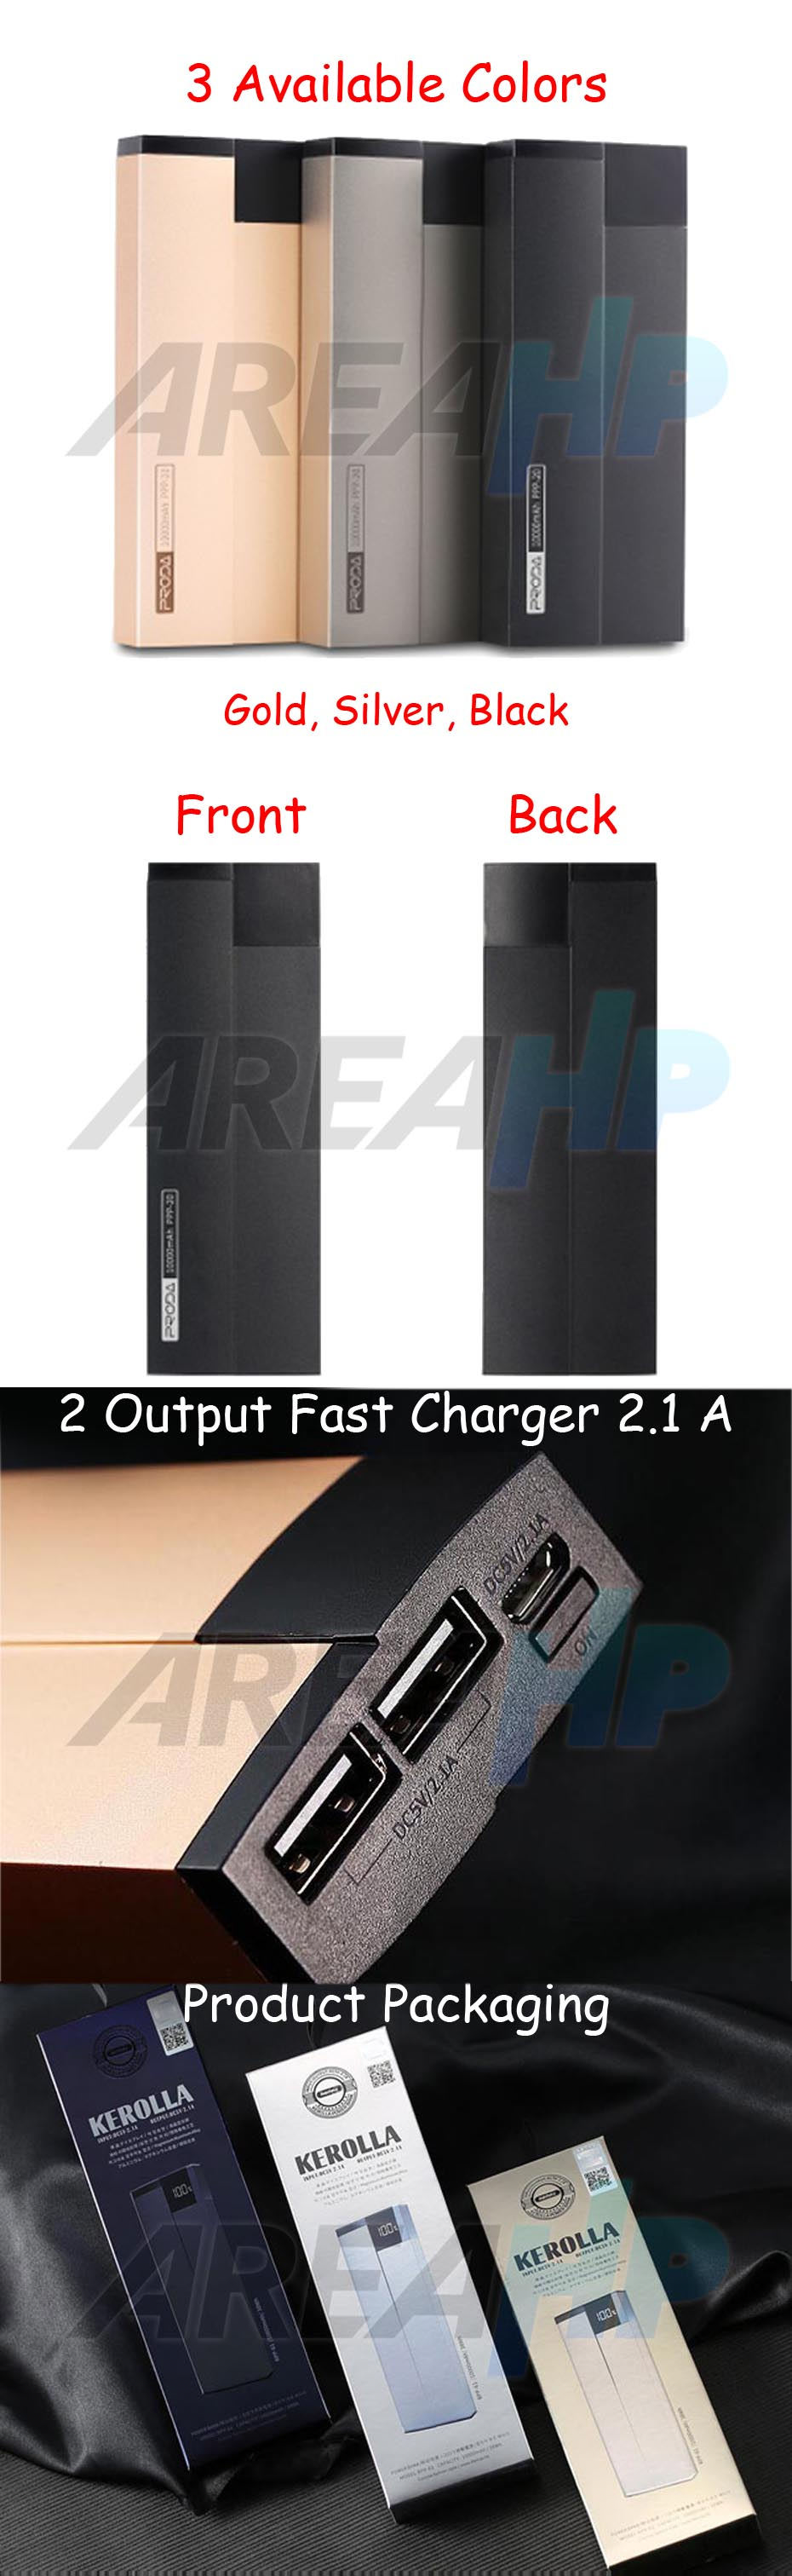 Remax Power Bank 10000 mAh Proda Kerolla PPP-20 Overview